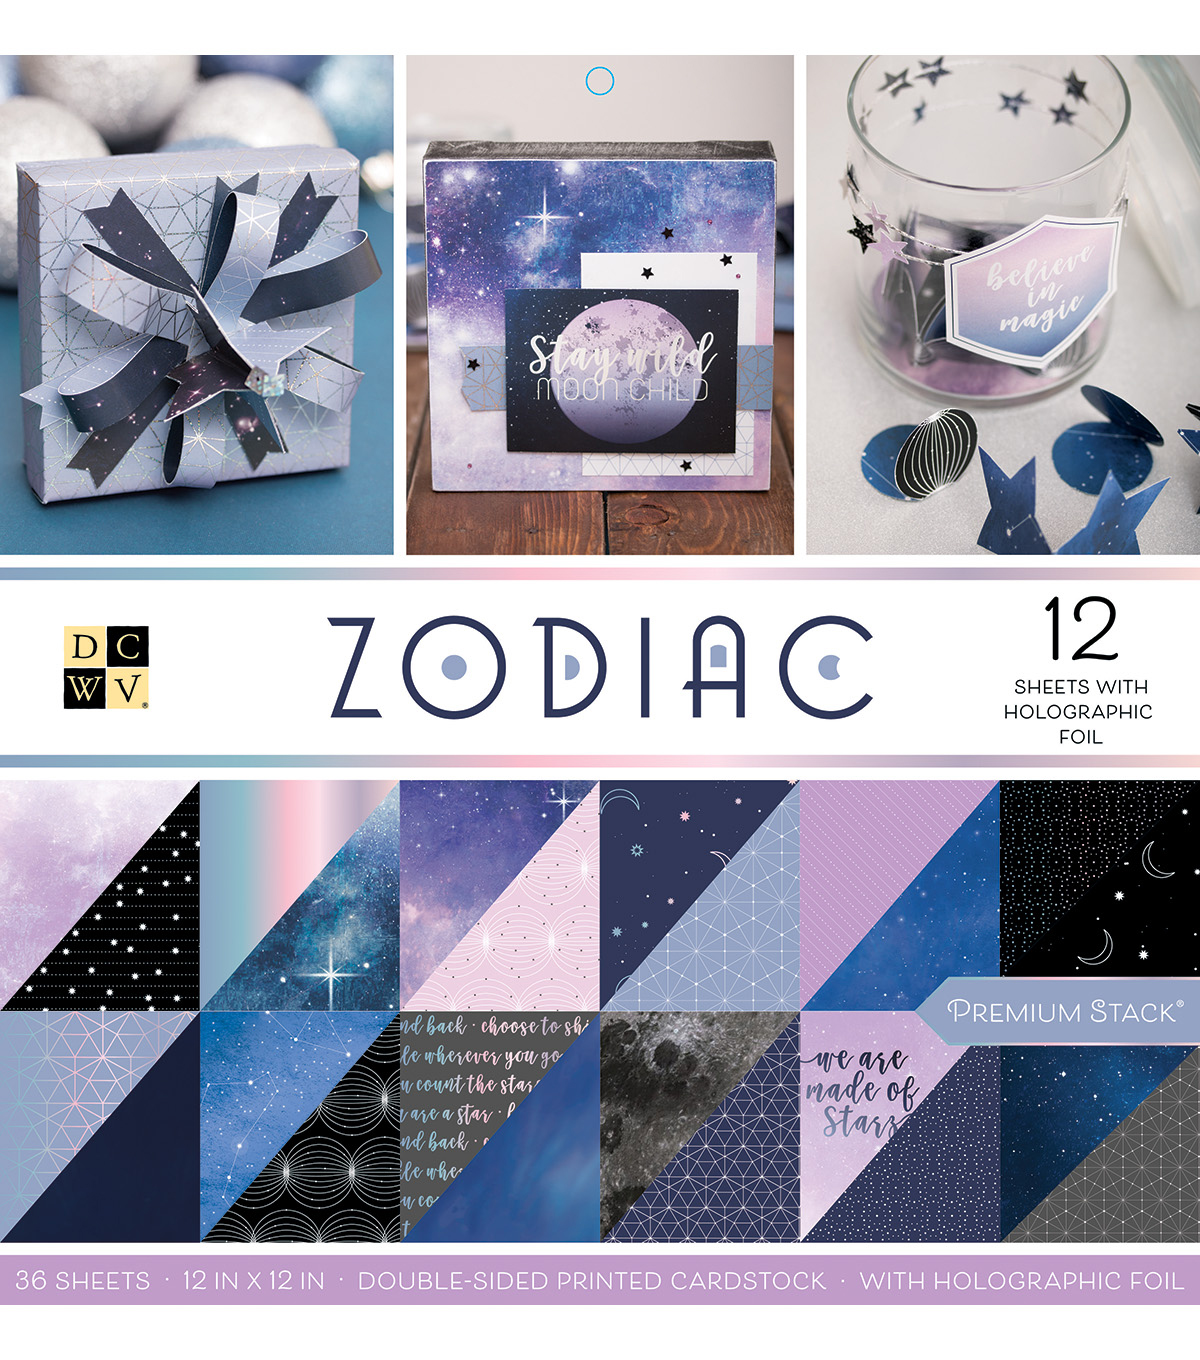 Dcwv 36 Pack 12''x12'' Premium Stack Printed Cardstock Zodiac              Dcwv 36 Pack 12''x12'' Premium Stack Printed Cardstock Zodiac by Dcwv